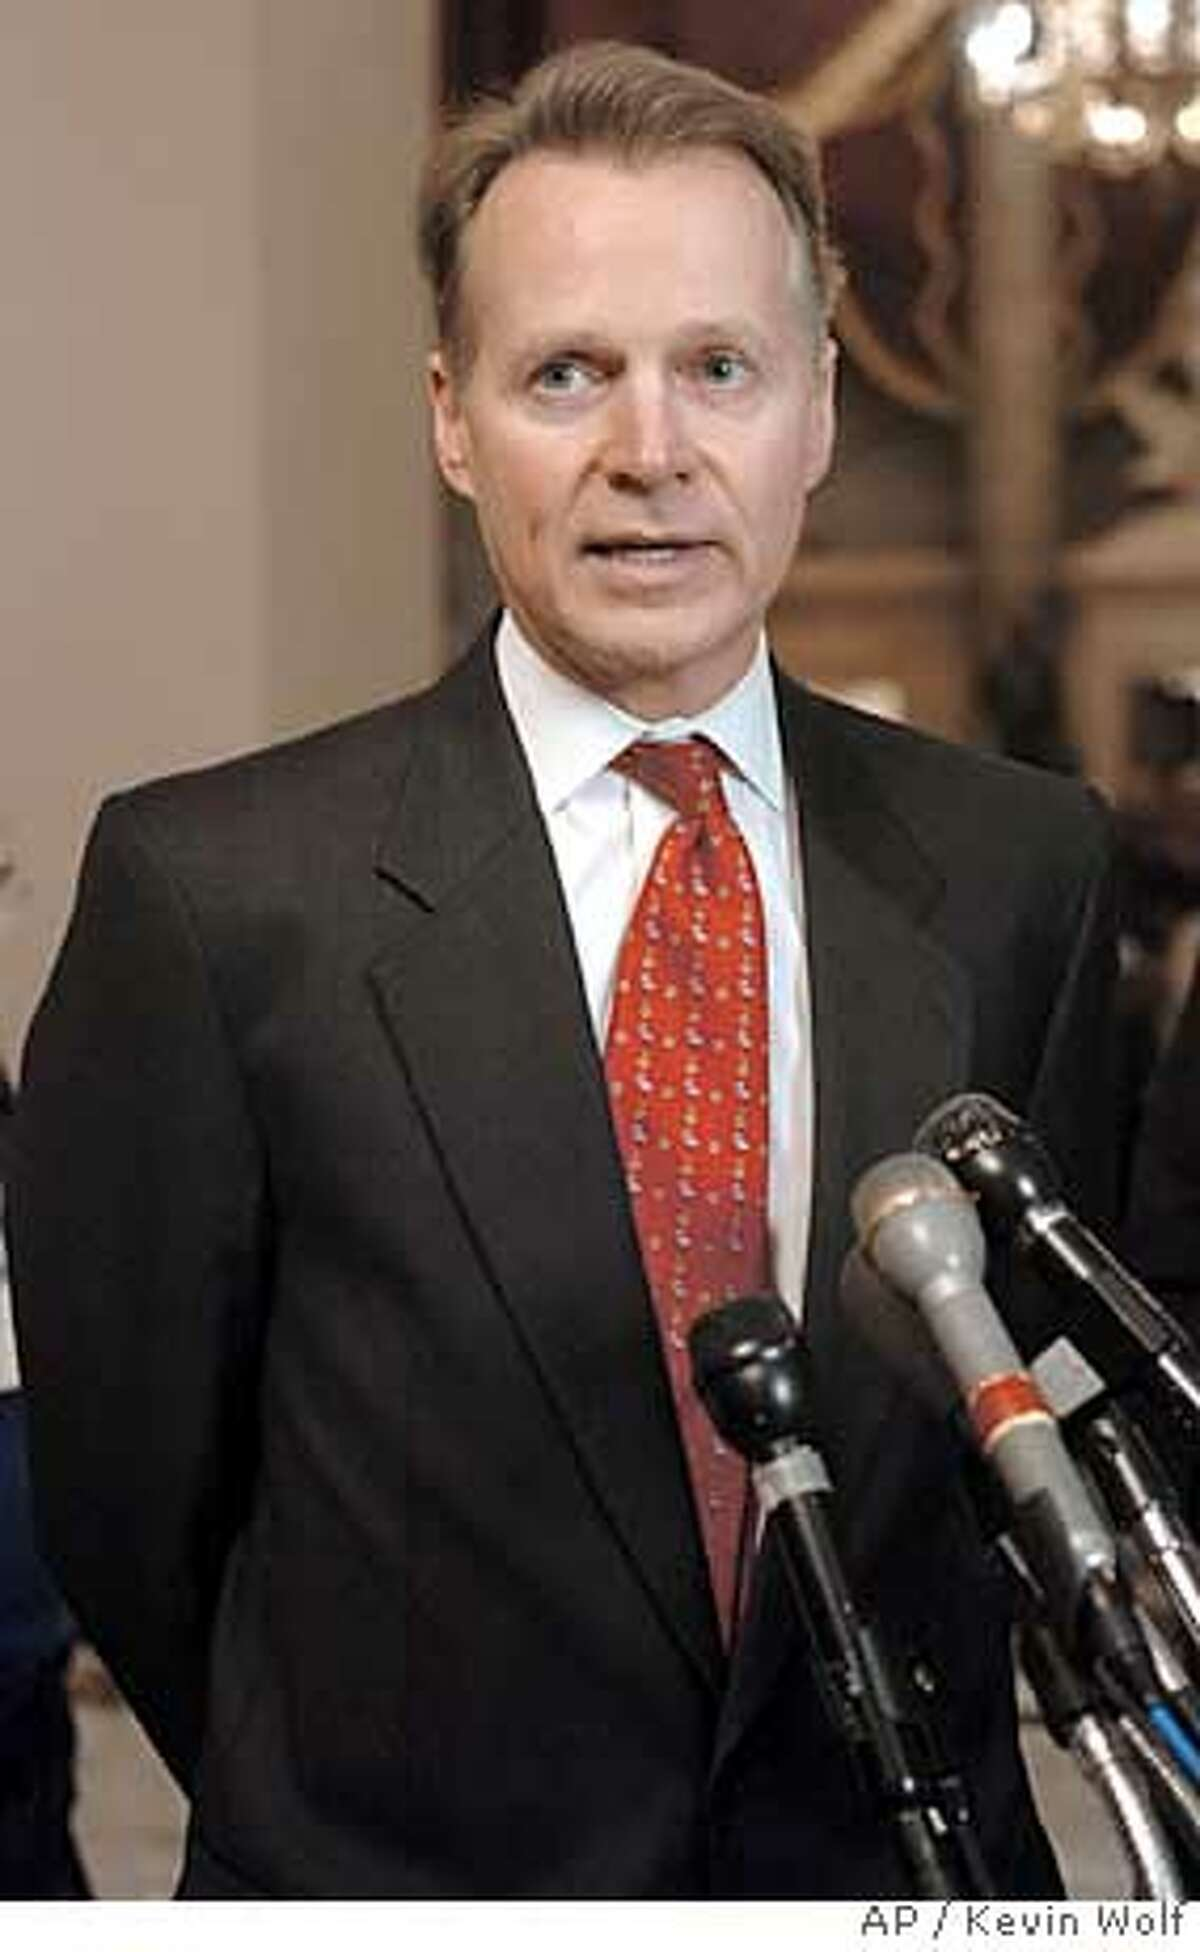 House Rules Chairman David Dreier, R-Calif., speaks to the press after a Republican conference at the Capitol on Monday, Jan. 3, 2005. (AP Photo/Kevin Wolf)